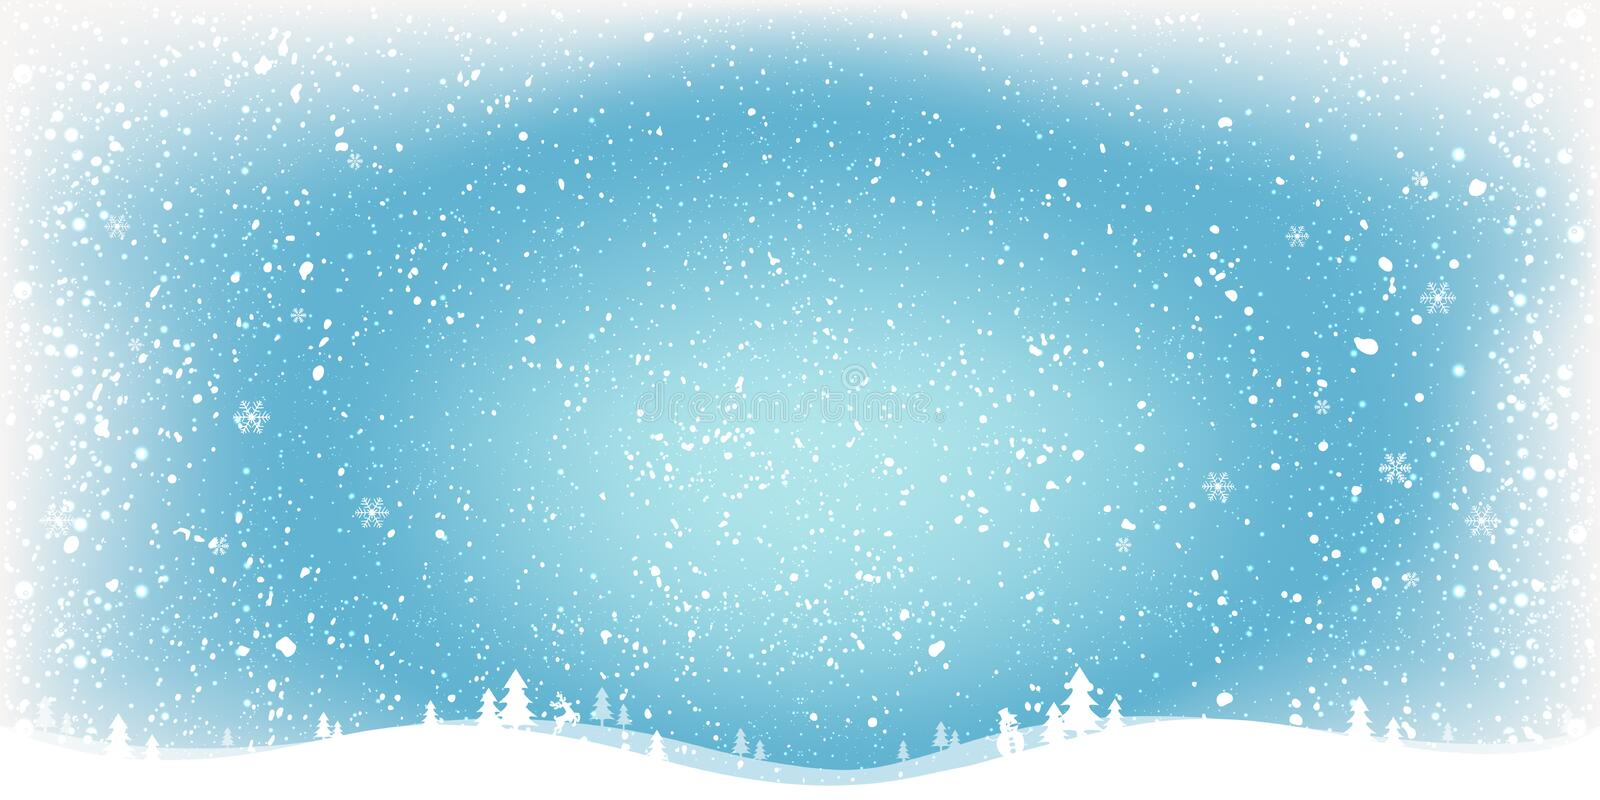 Blue Winter Christmas background with landscape, snowflakes, light, stars. Xmas and New Year card. royalty free illustration